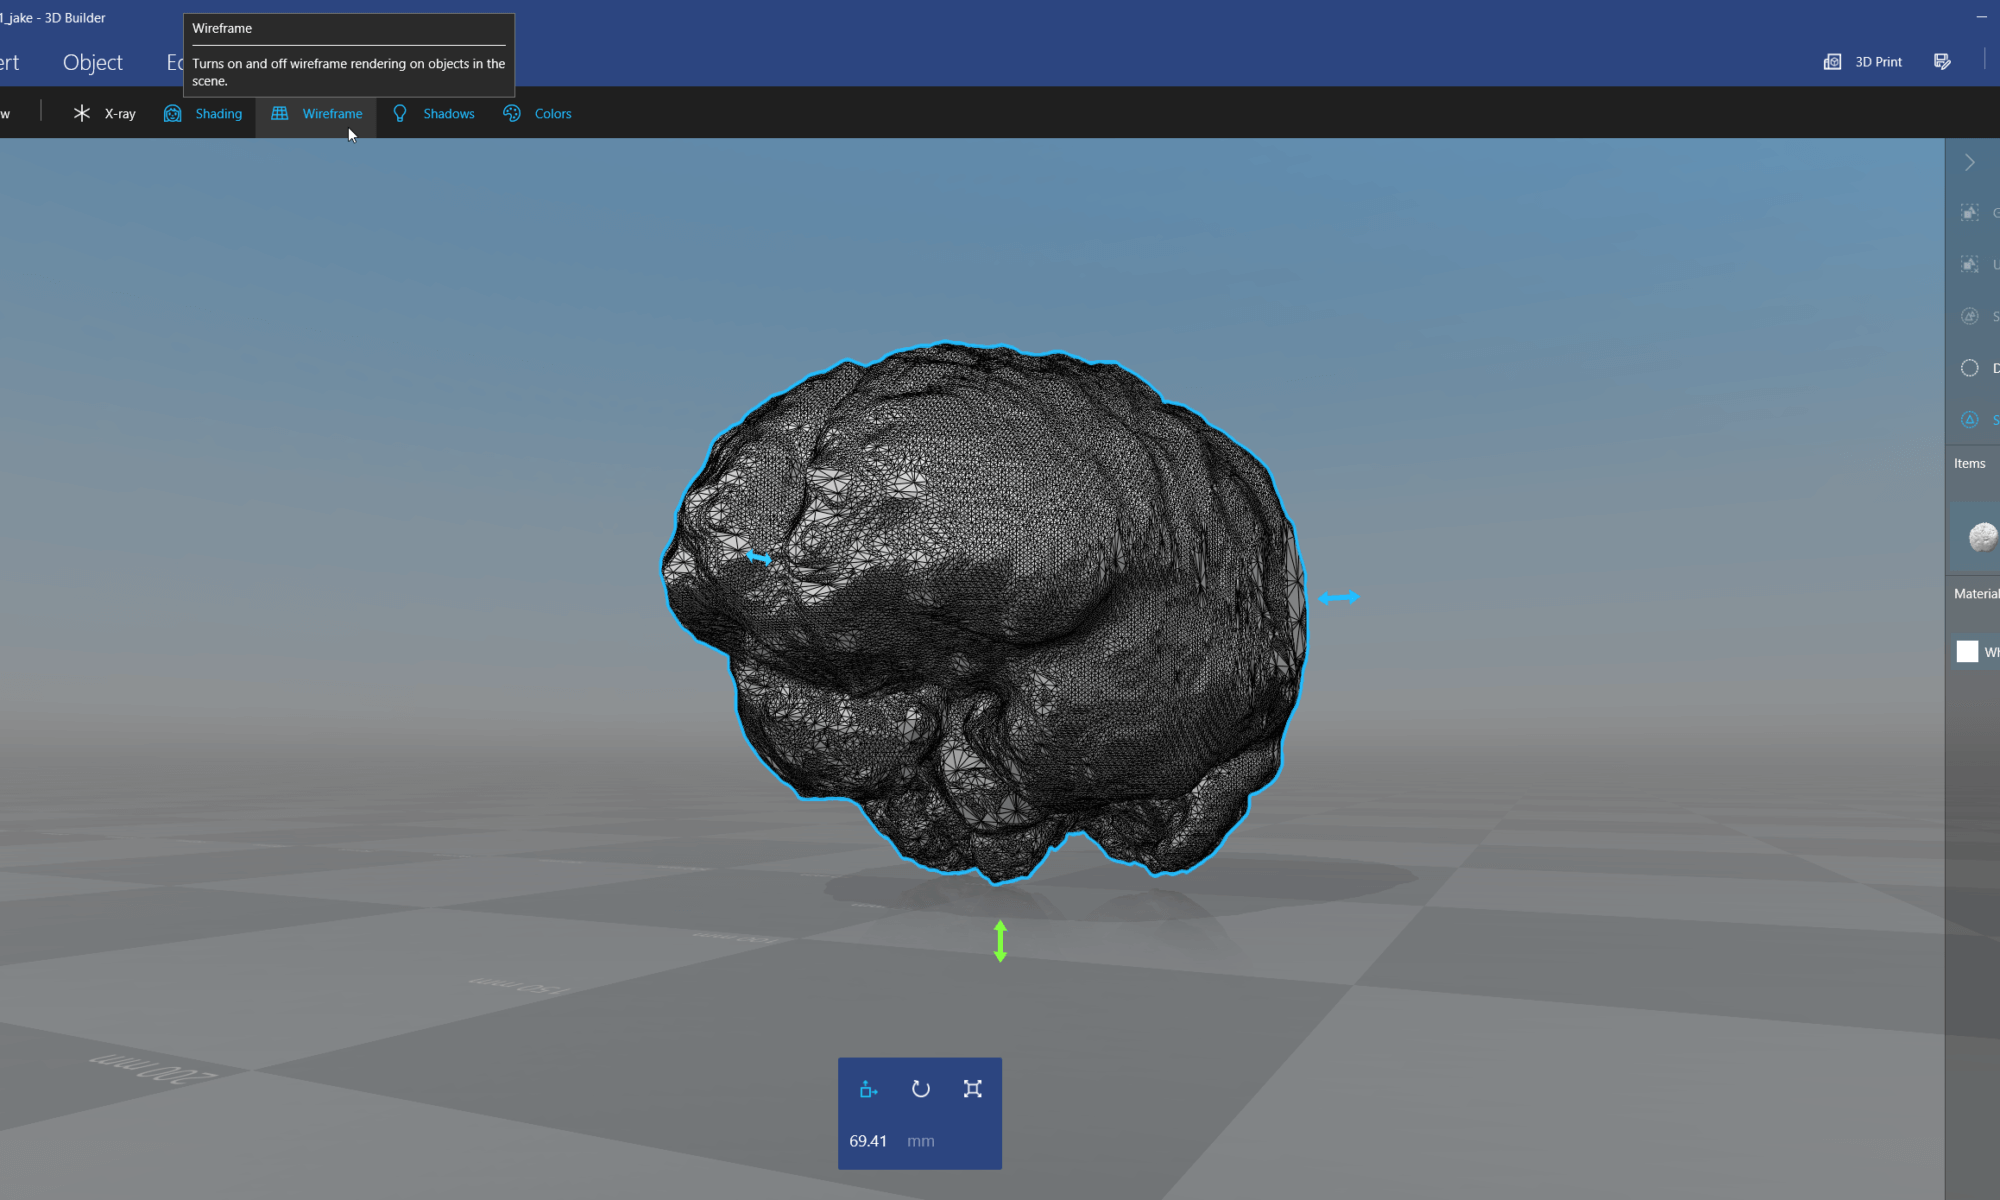 3D Builder: show 3D model of brain segmented from MRI / MRT image